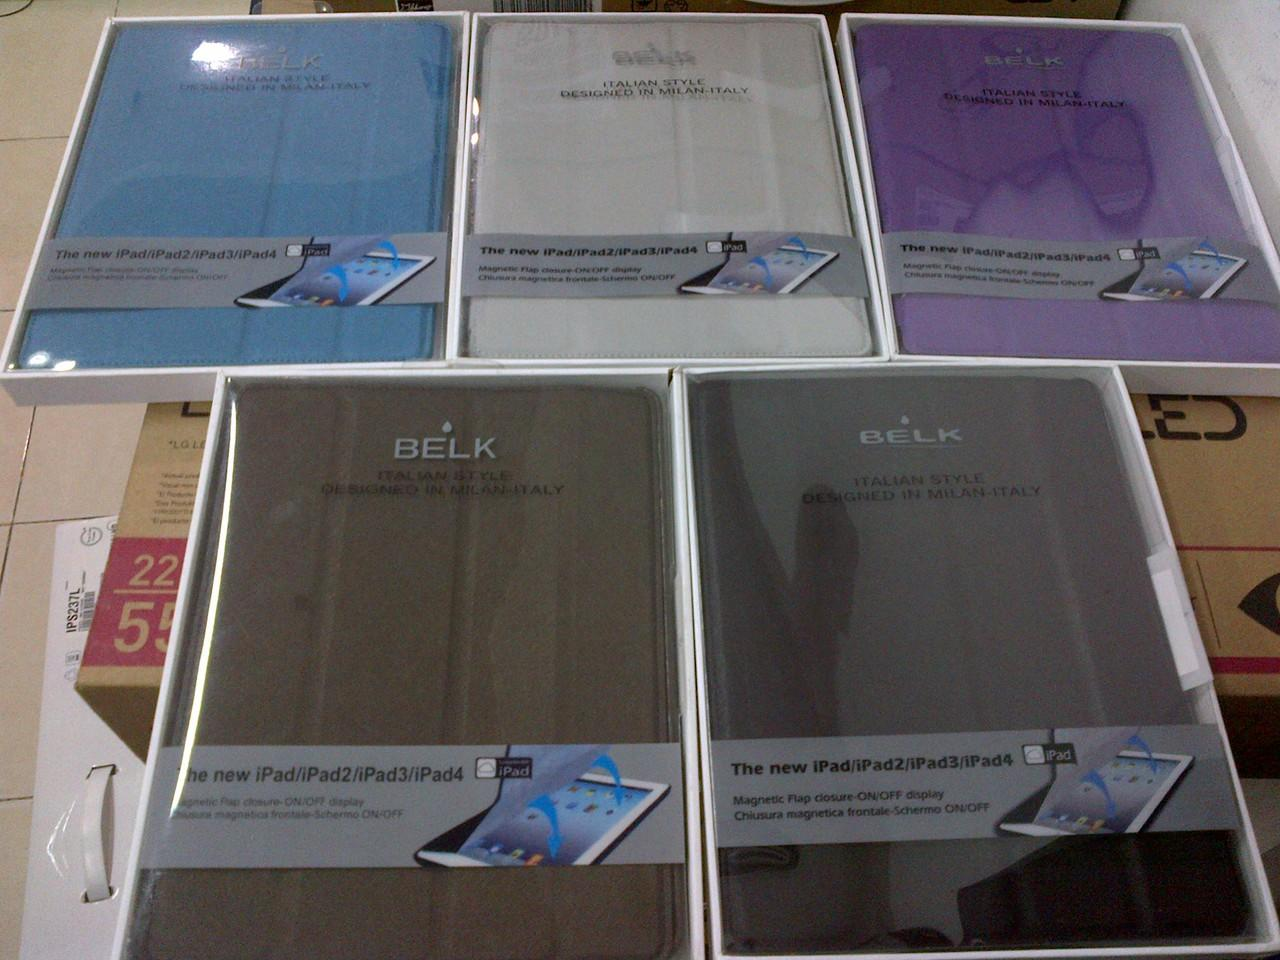 HARD SOFTCASE COVER CASING IPAD 2,3,4 TREXTA,BELK,ROCK ELEGANT,FLIPJACKET,INCASE SALE